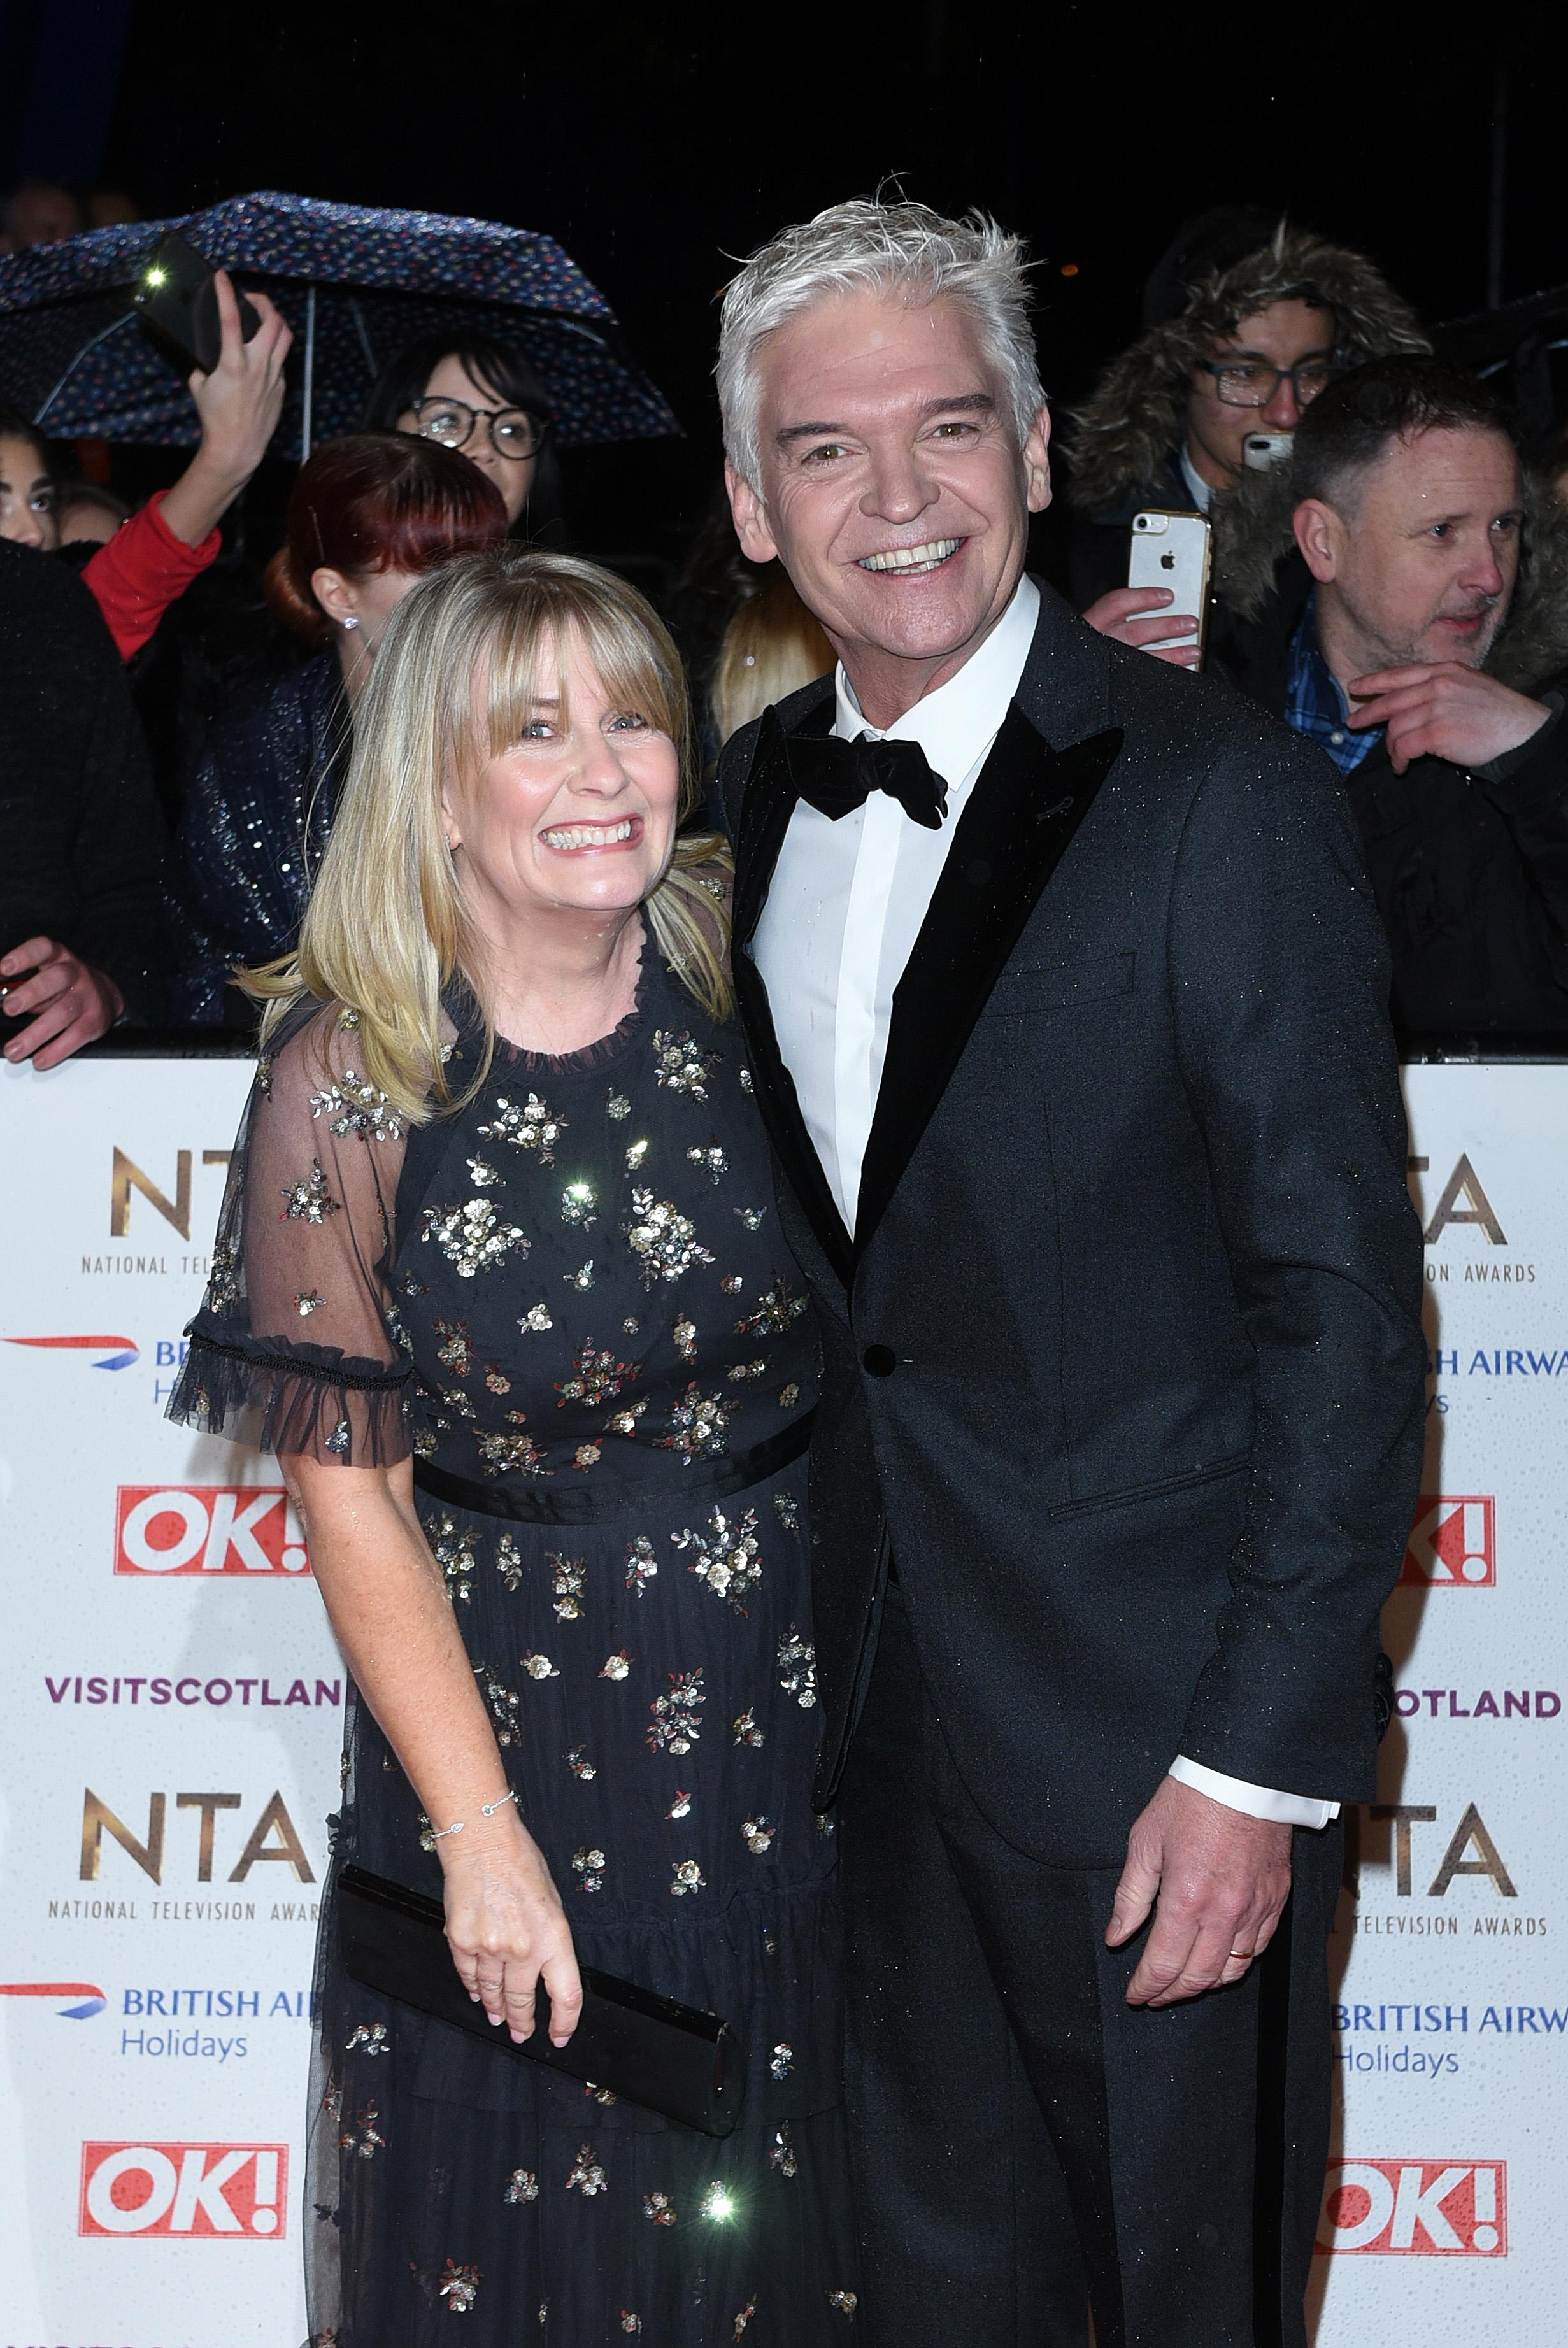 Phillip Schofield and his wife, Stephanie Lowe, at the National Television Awards in January 2019. (Photo by Joe Maher/WireImage)